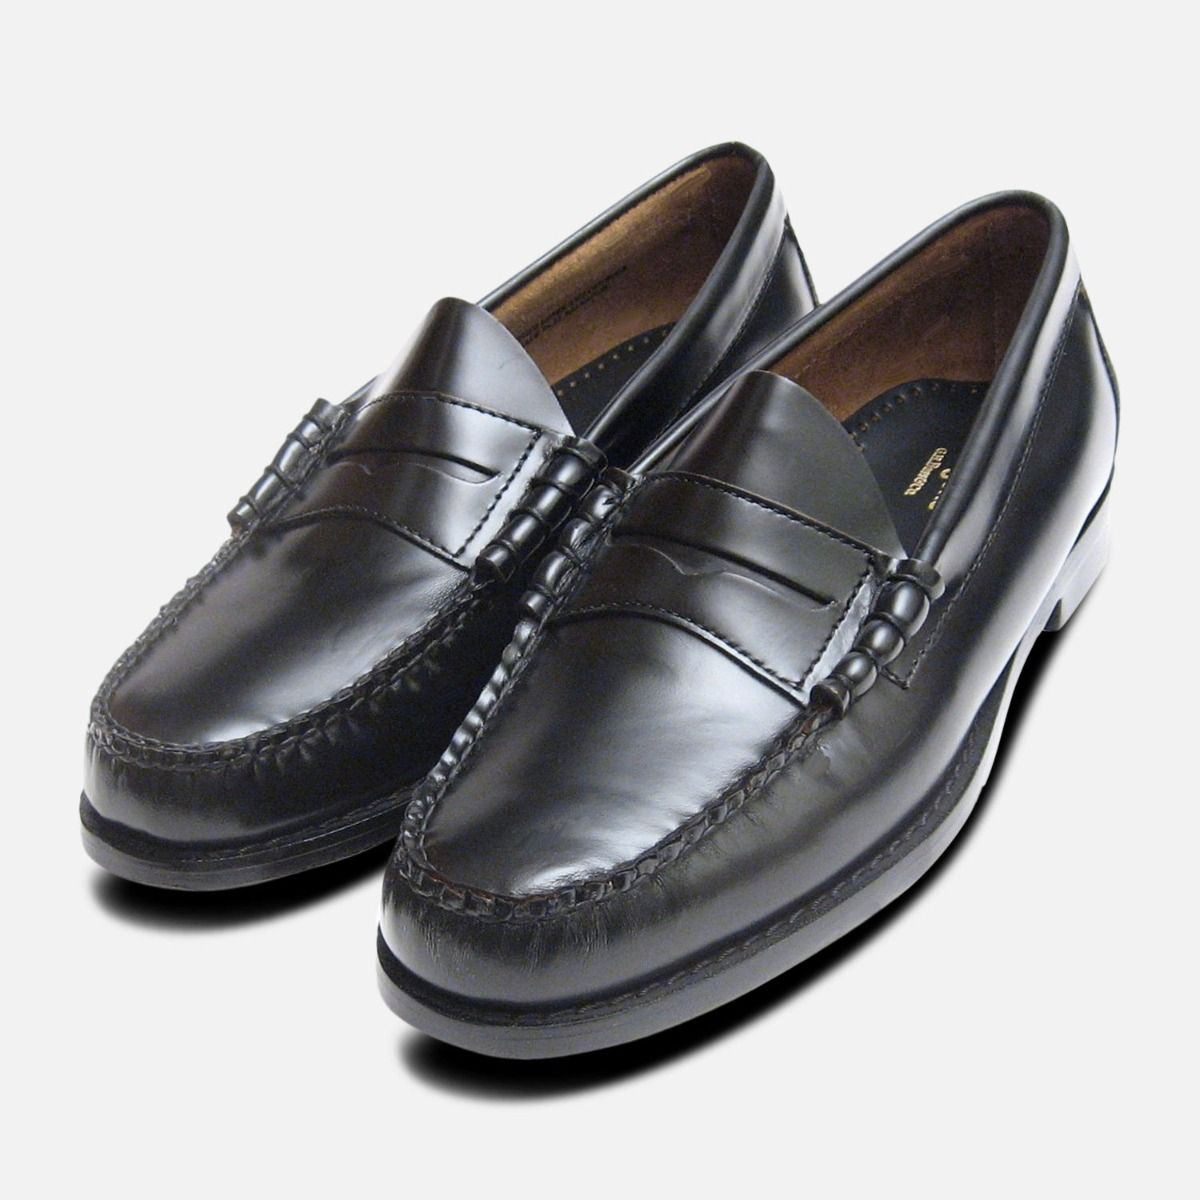 aa13c7f2a4 Classic Mens Black Polished Larson Penny Loafers GH Bass Weejuns